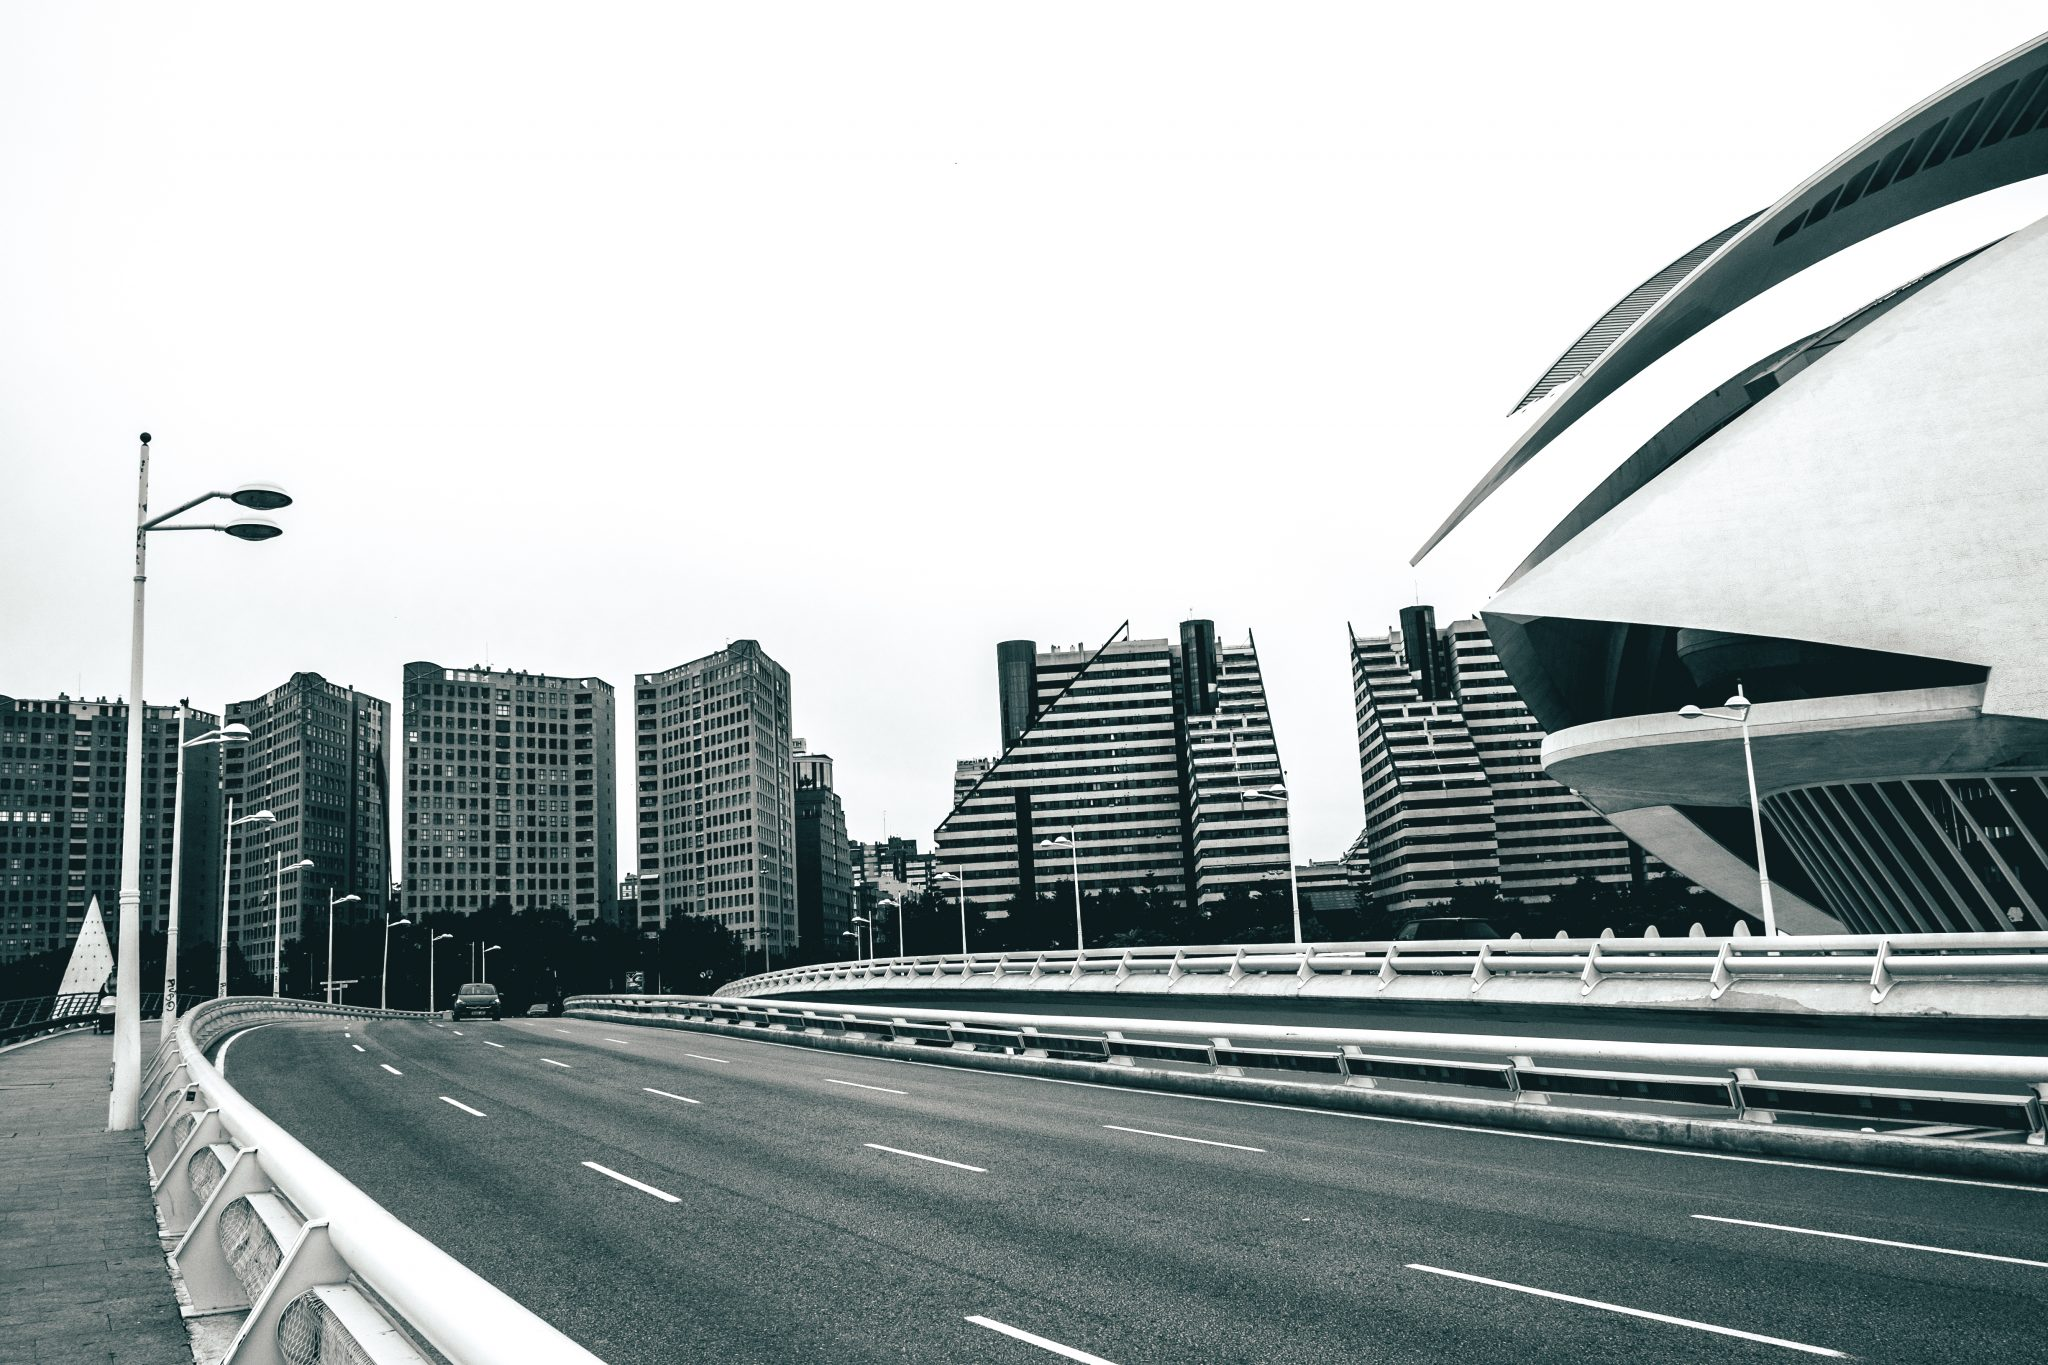 Street view at the architectural complex The City of Arts and Sciences in the city of Valencia photo by Jo Kassis